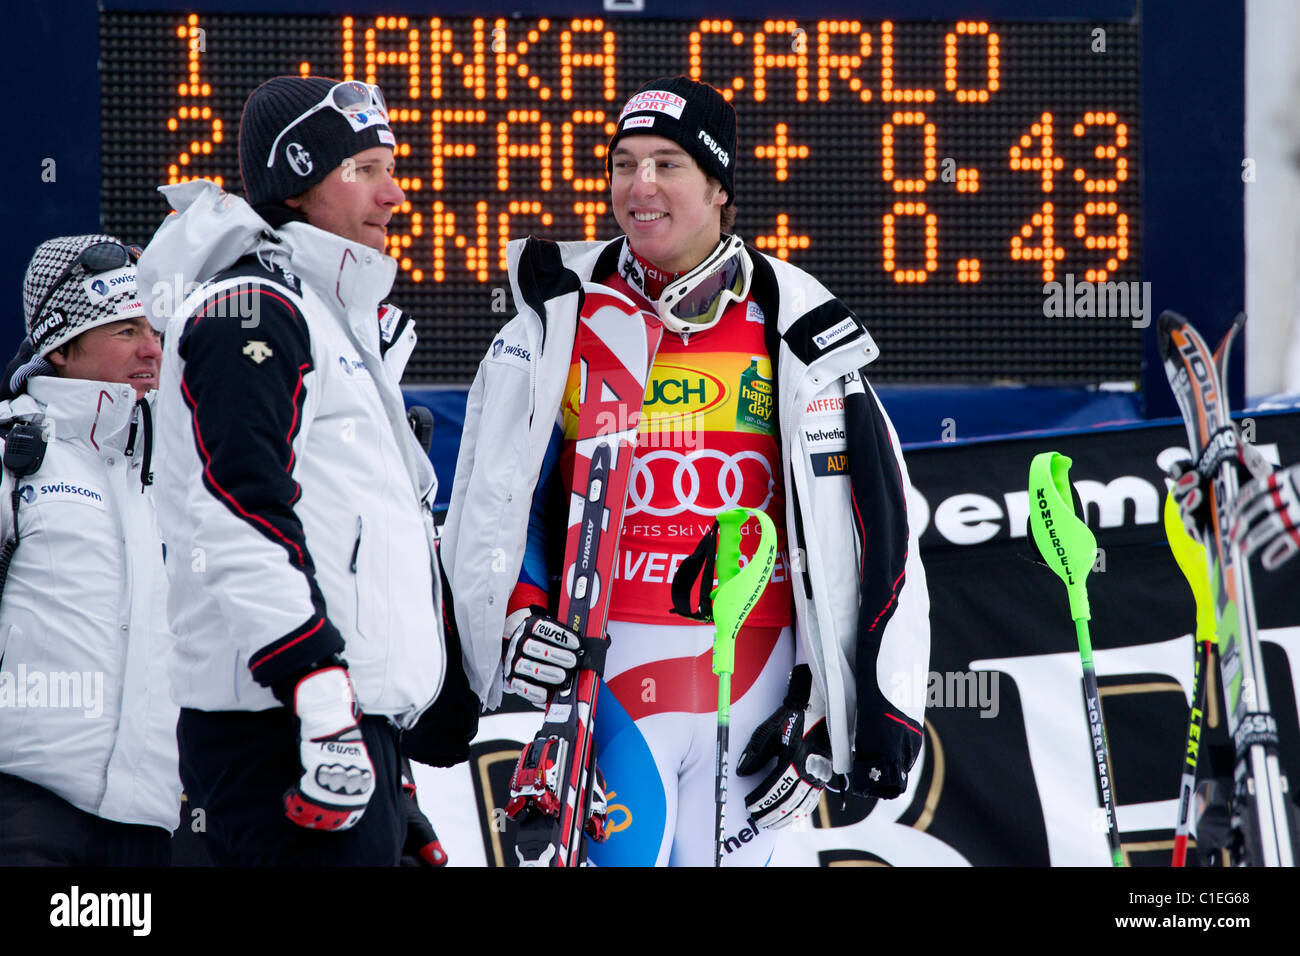 Carlo Janka waiting for his turn to go to the podium. 1st place in super combined in Beaver Creek. - Stock Image